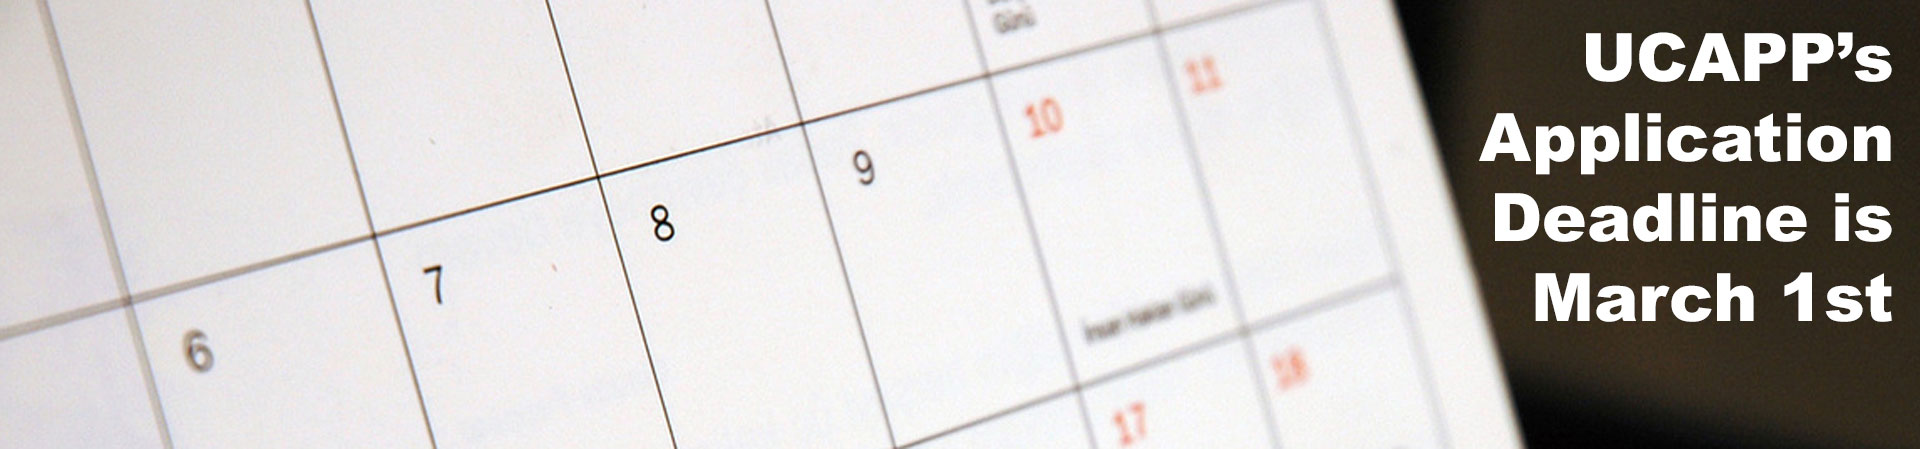 Calendar view of UCAPP's March 1st application deadline